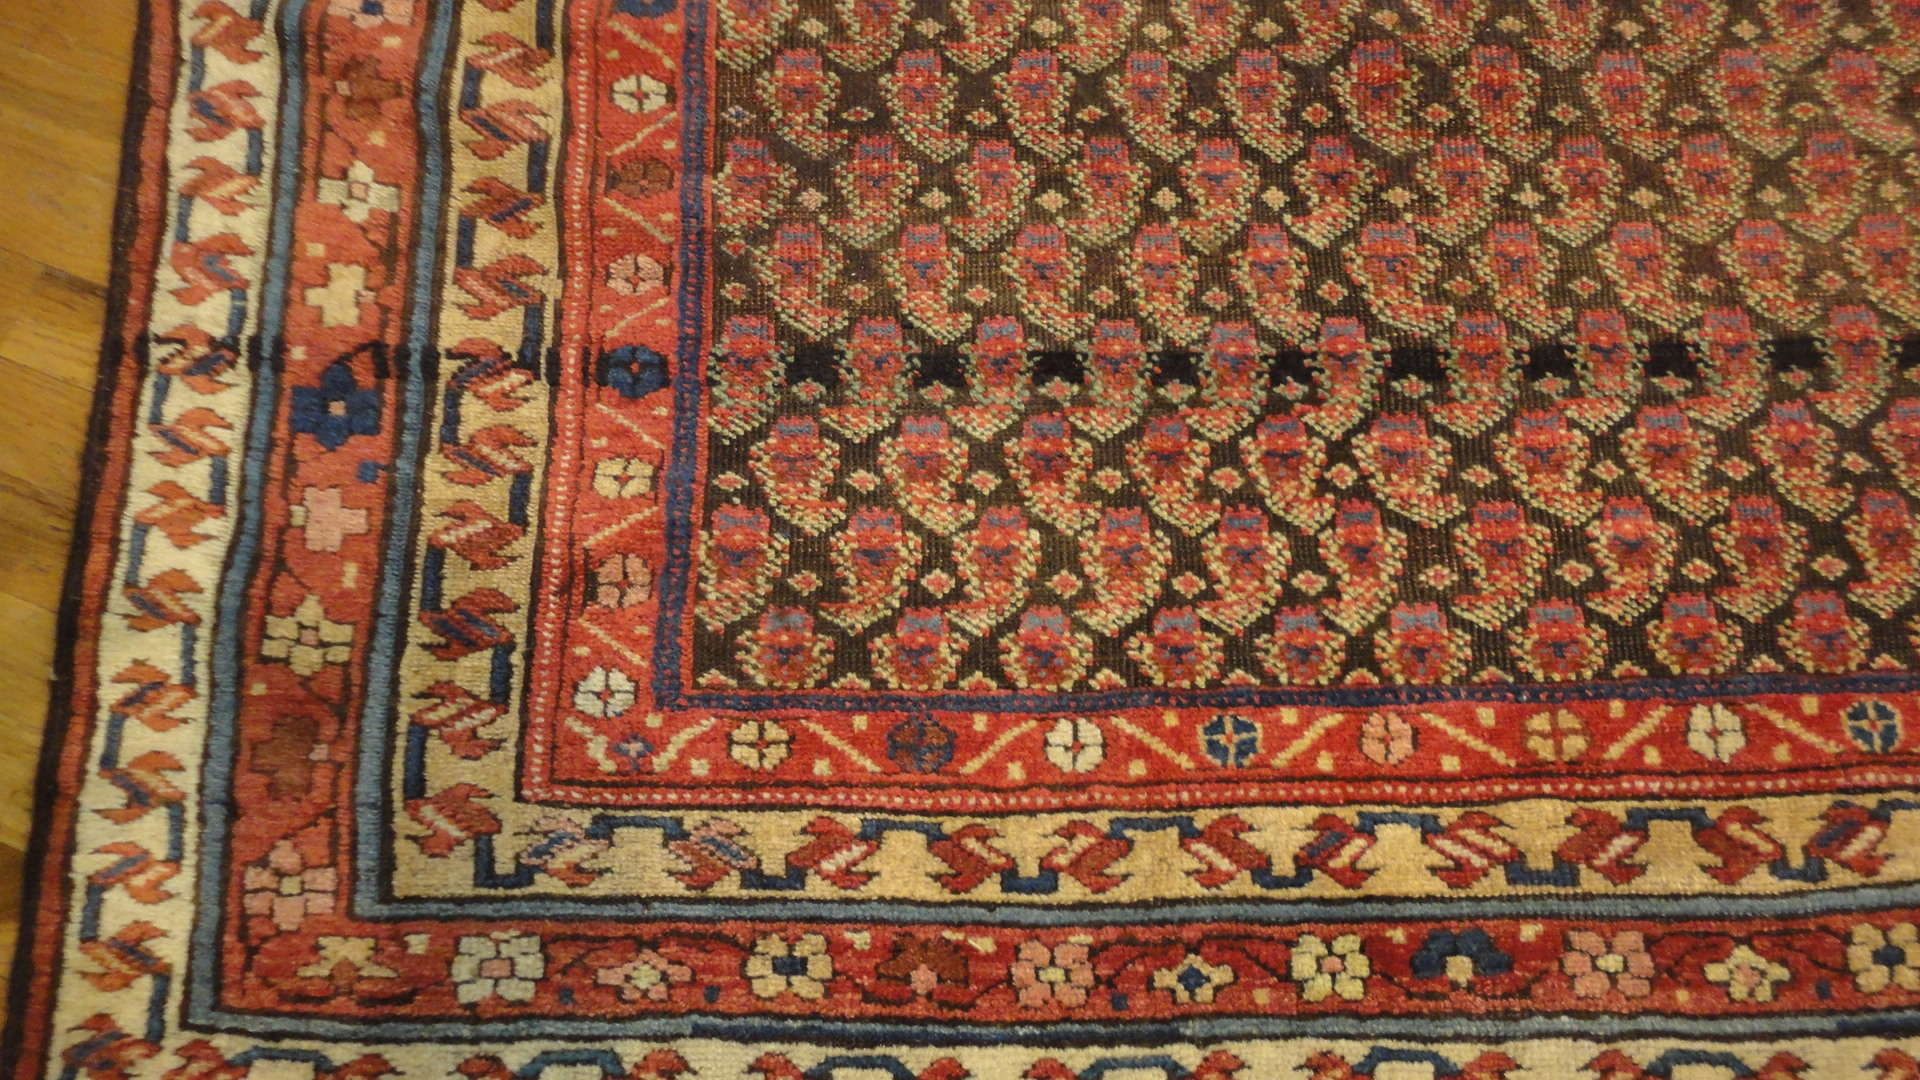 24566 antique persian kurd rug 5x8 -2